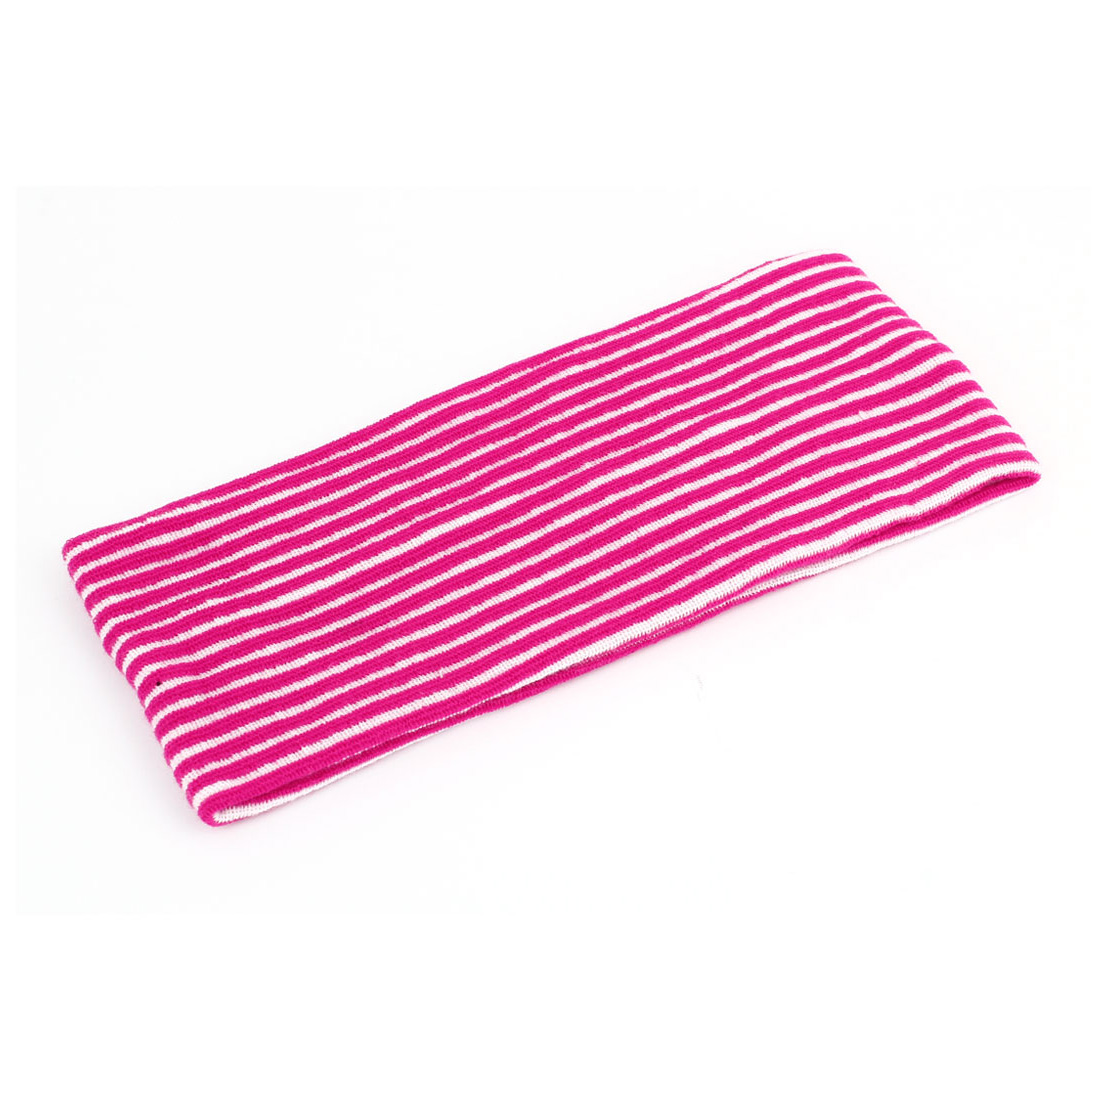 Magenta White Stripe Pattern Stretchy Face Washing Shower Hairband Hair Holder for Women